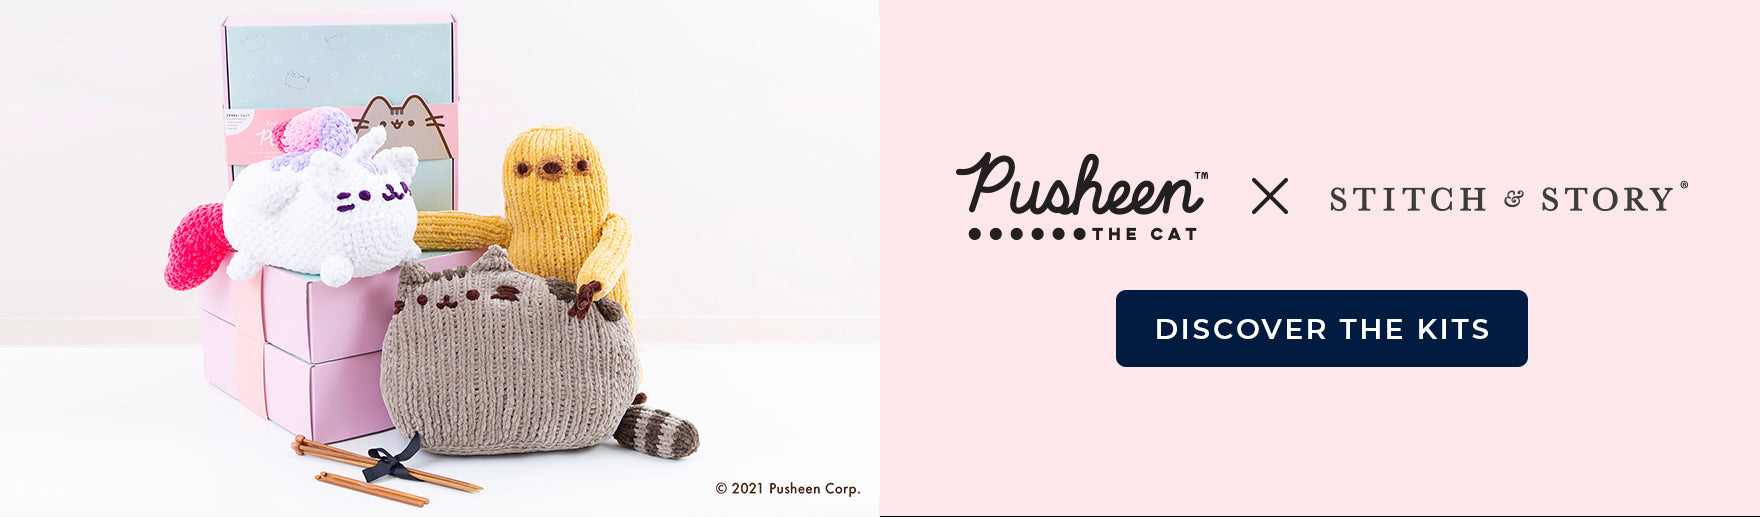 Shop the Pusheen collection of knitting and crochet kits at Stitch & Story